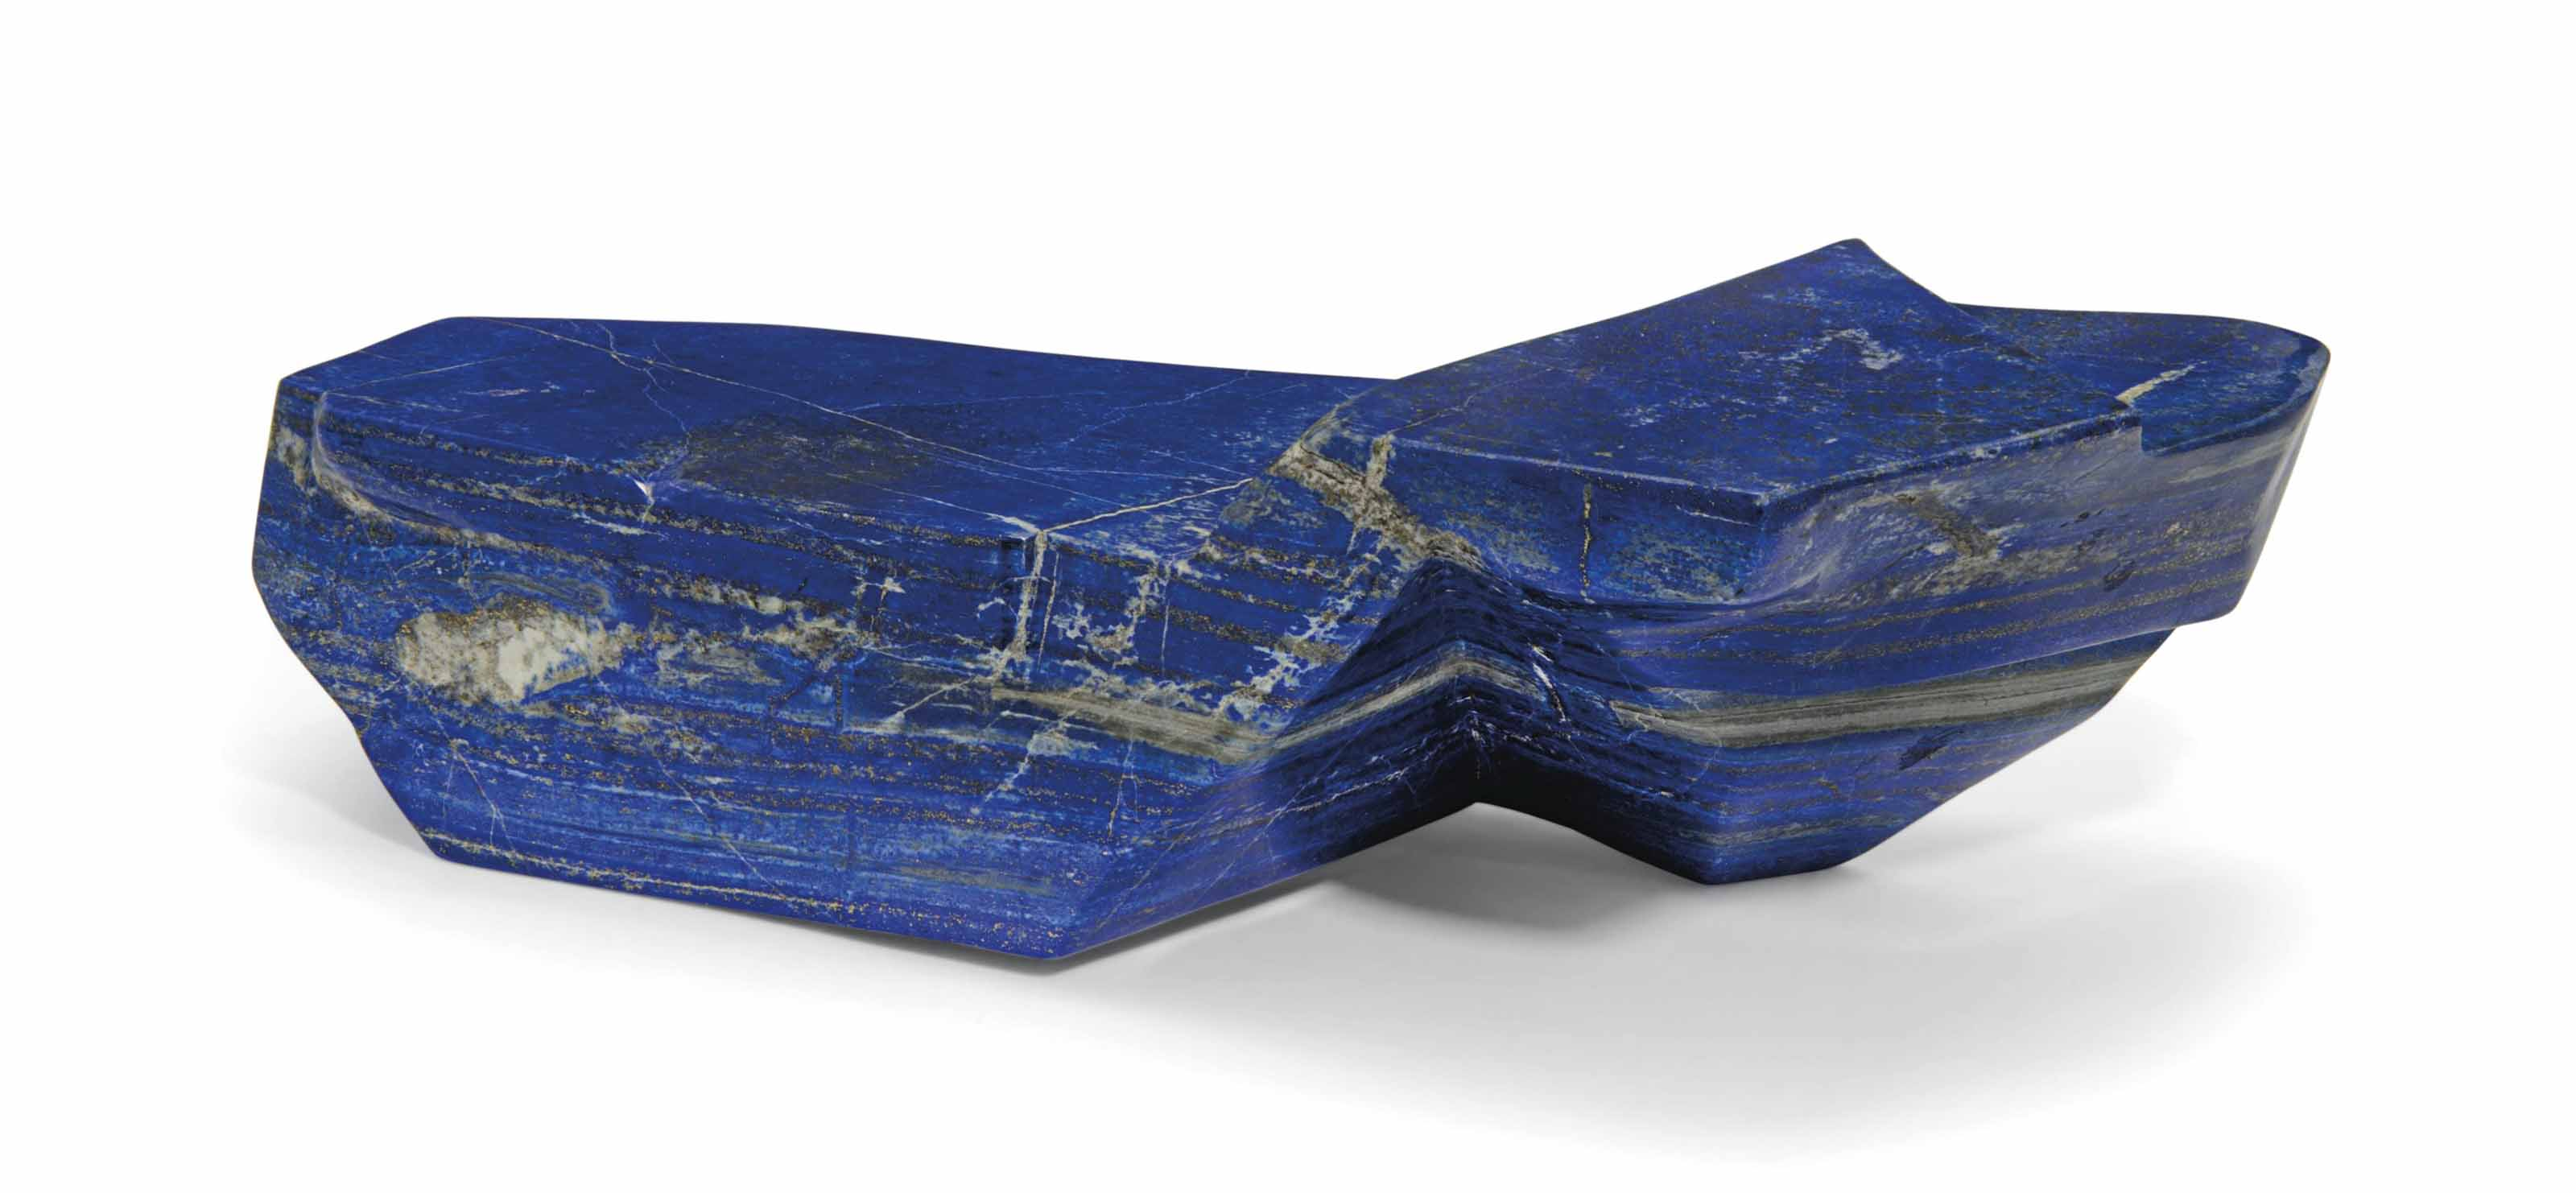 A LARGE SPECIMEN OF LAPIS LAZU